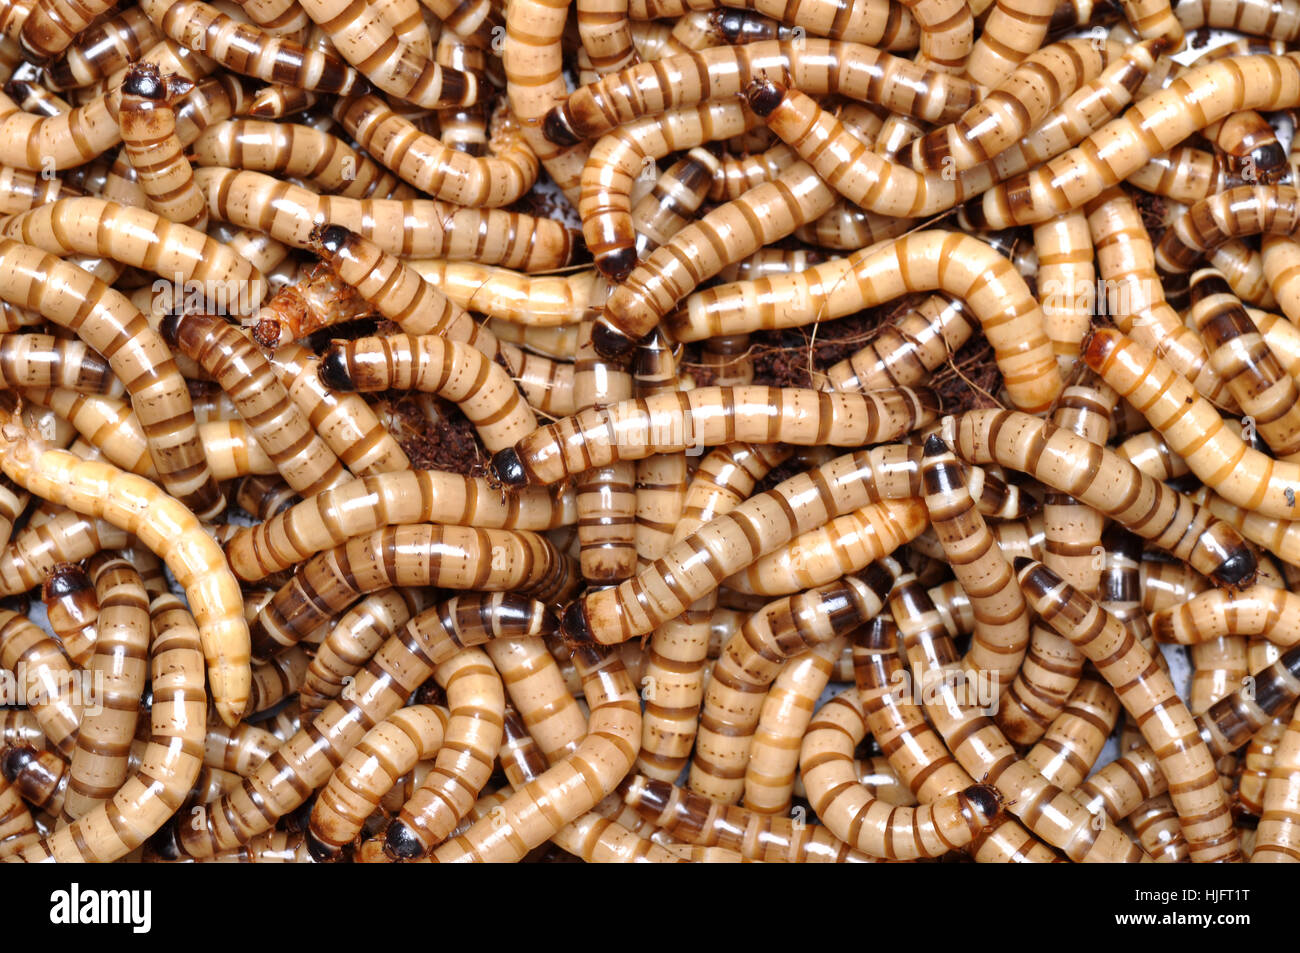 macro, close-up, macro admission, close up view, animal, scary, worms, maggot, Stock Photo